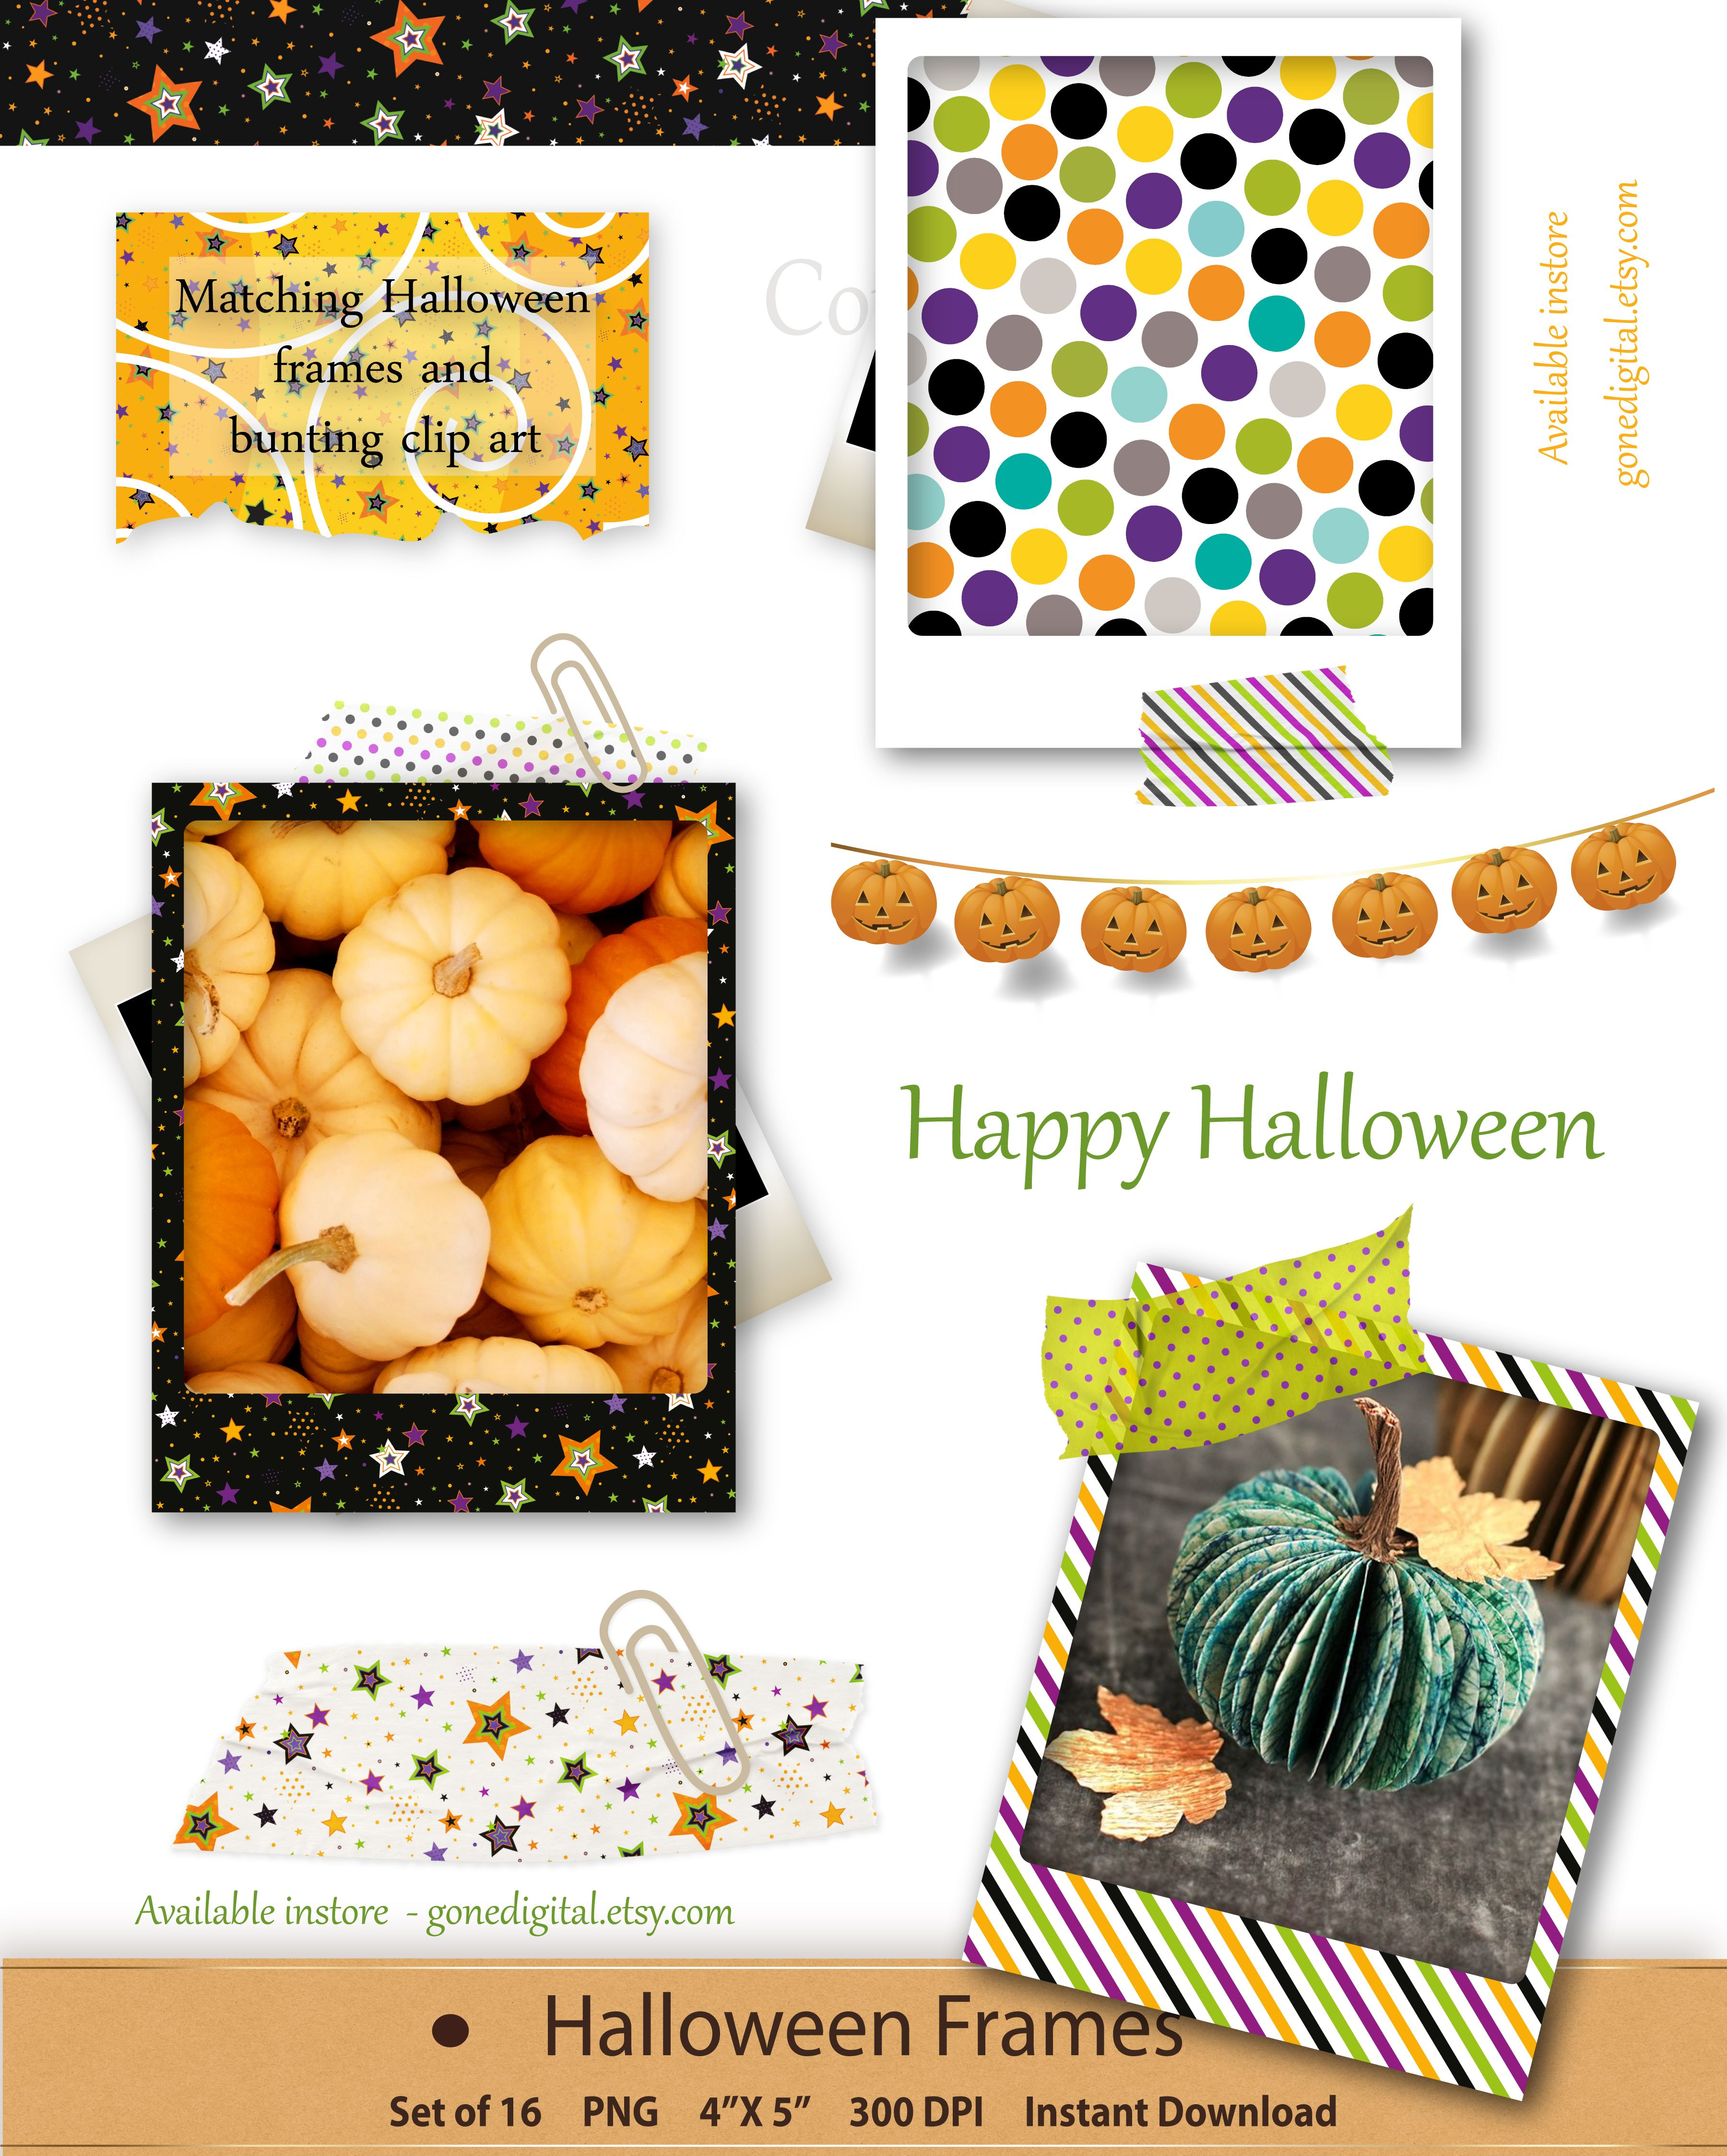 Halloween frames picture frame clip art halloween photo frame halloween frames picture frame clip art halloween photo frame printable instant download digital scrapbooking card making crafting clipart jeuxipadfo Image collections